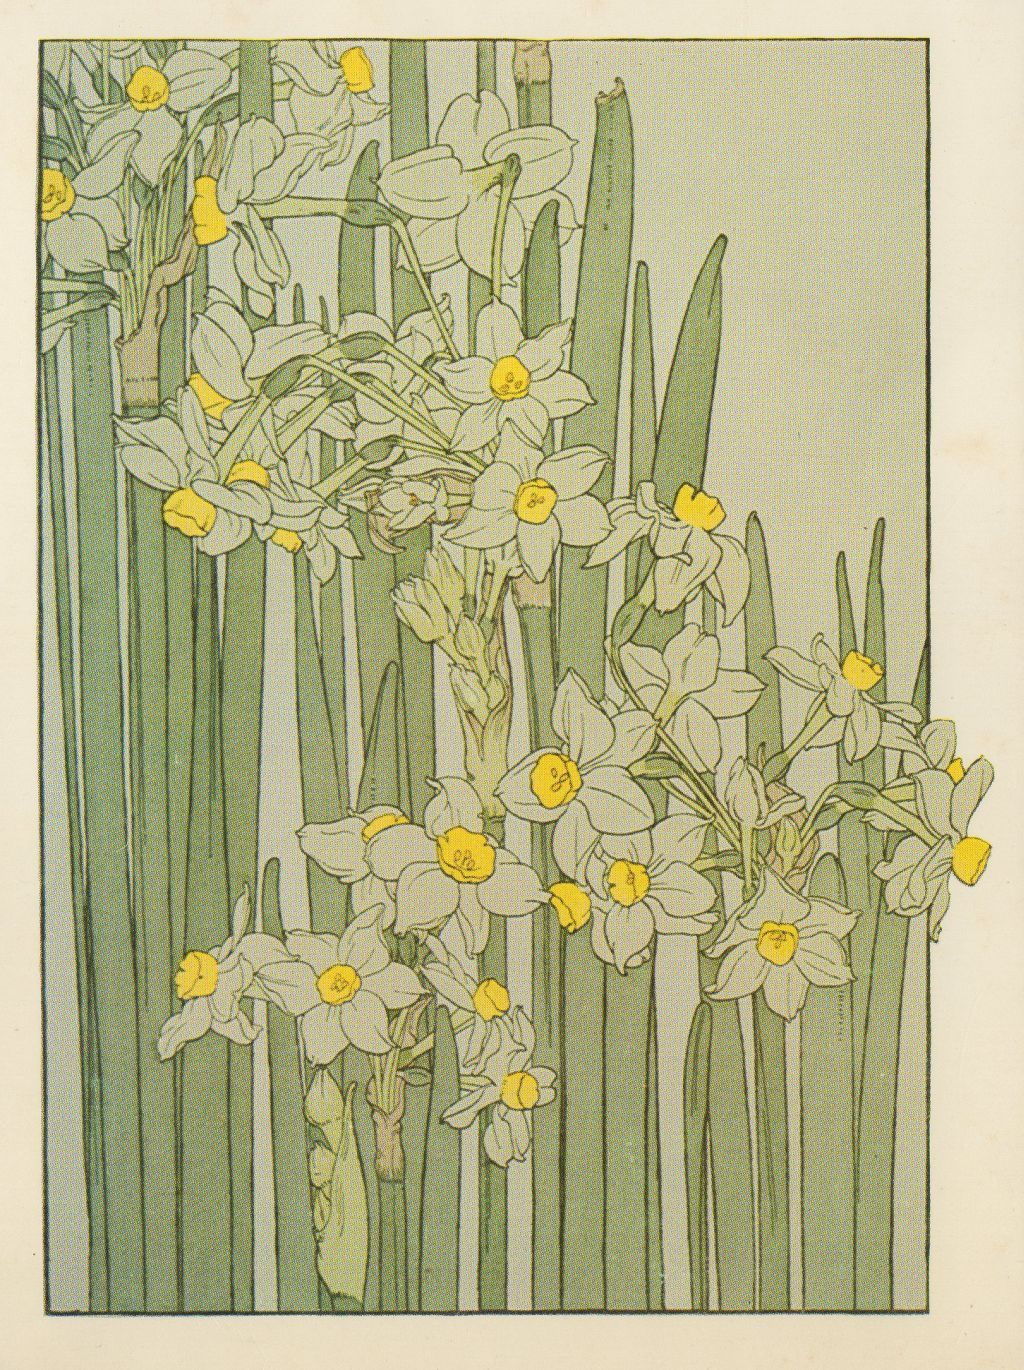 Art Deco Nouveau: Narcissus Flower Study In The Art Nouveau Style Artist